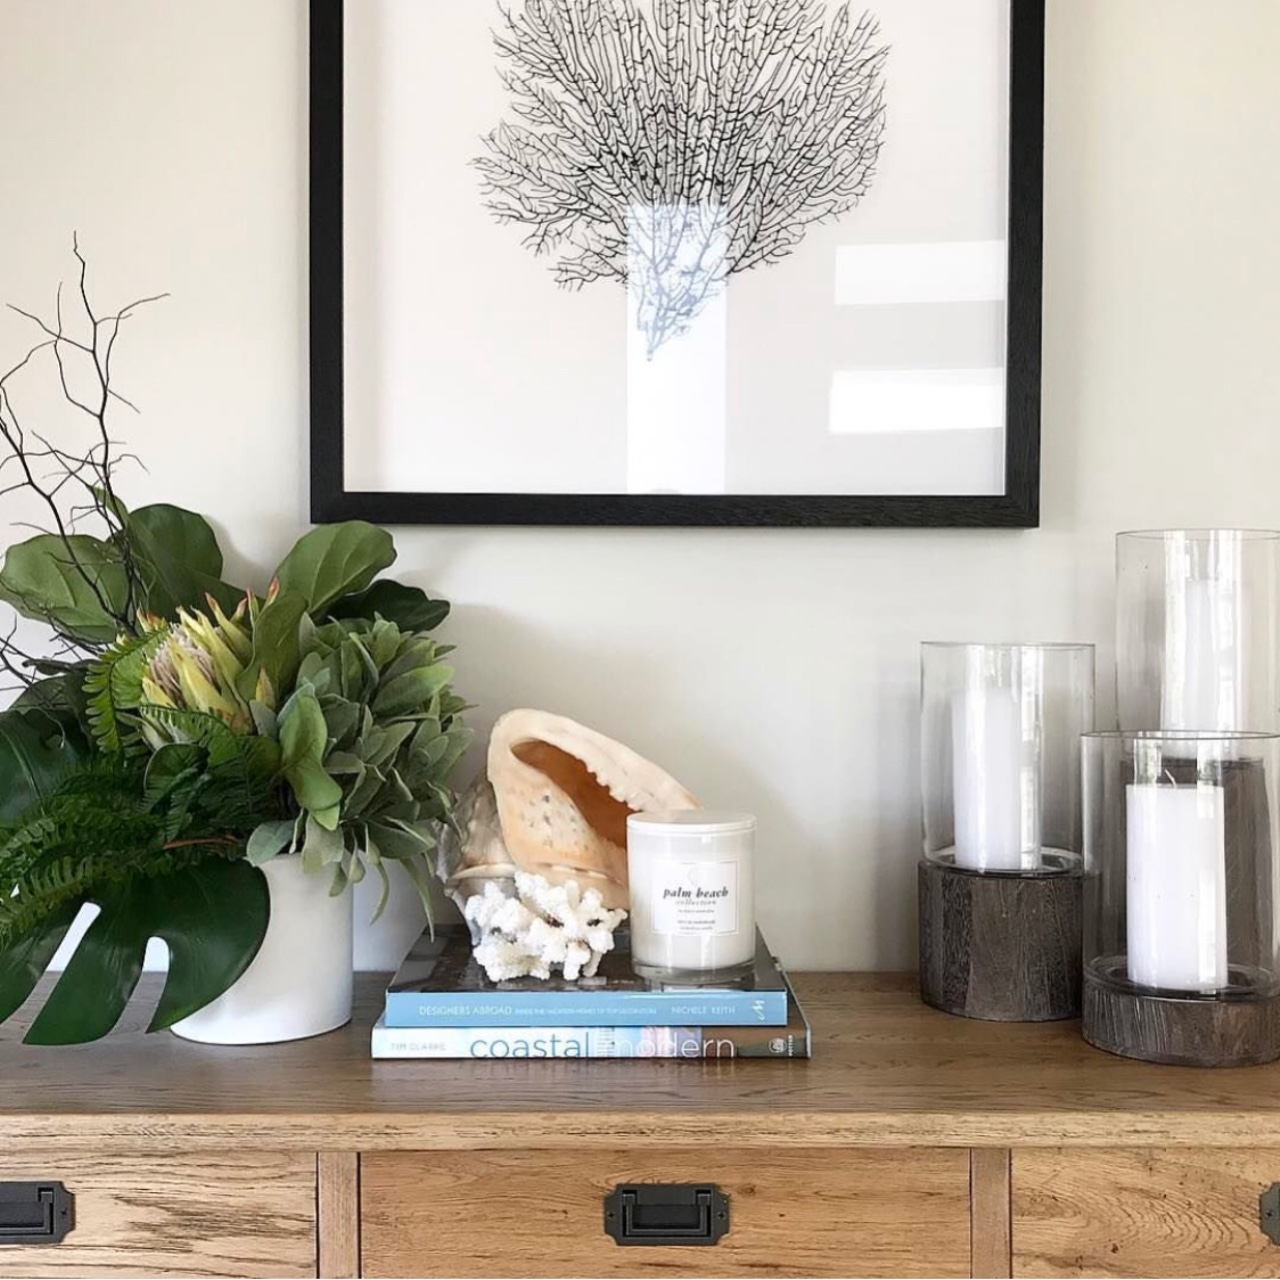 We all know it's the little things that count and with these small additions, any buyer will be impressed. - Image & Styling by Styleness